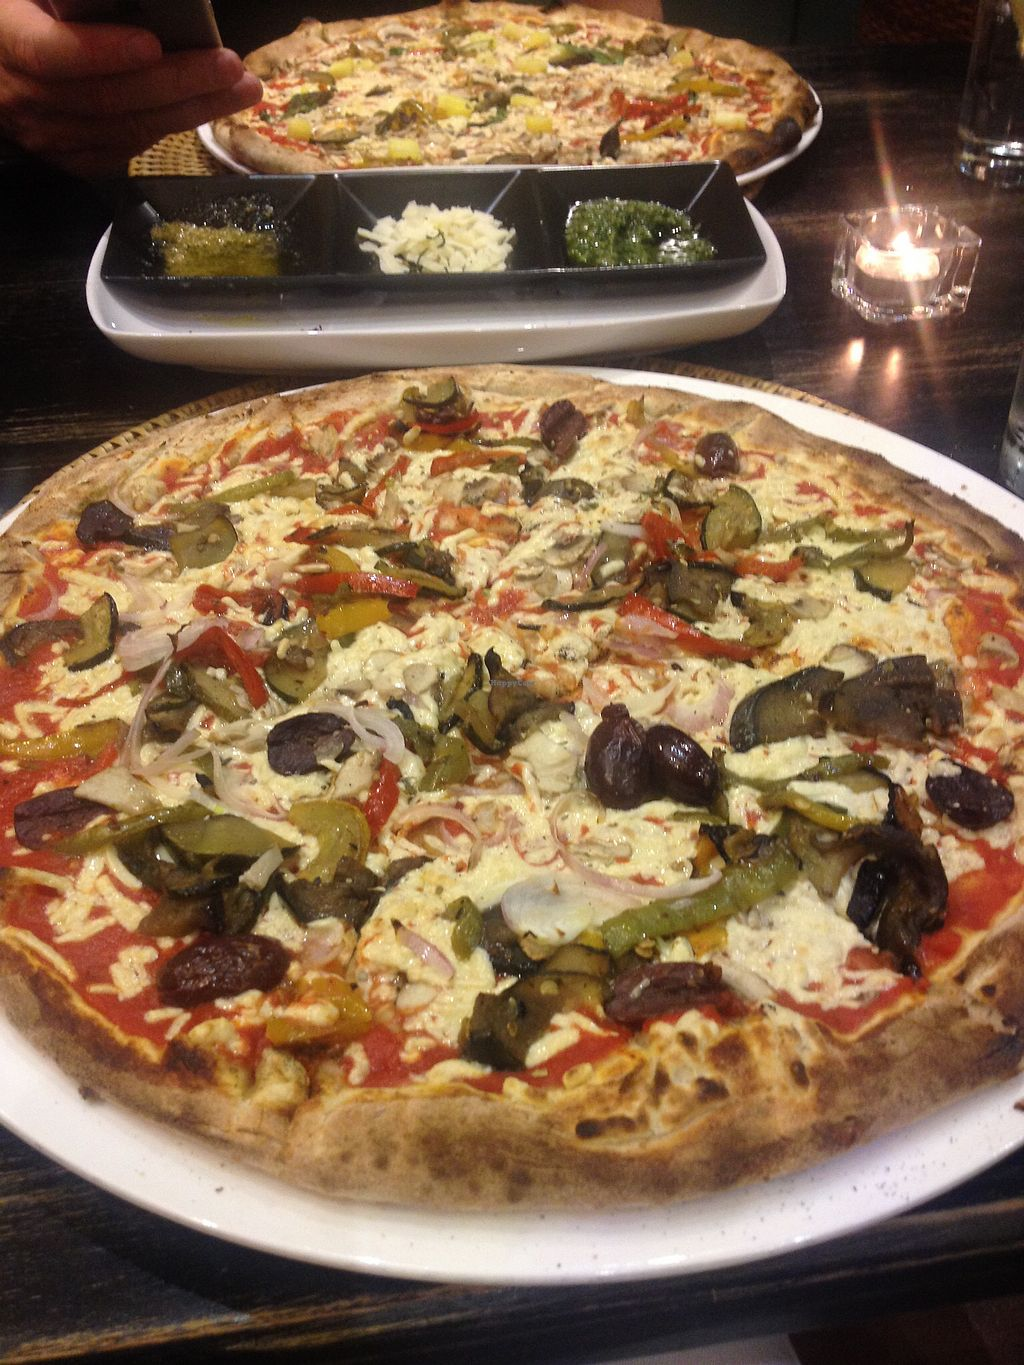 """Photo of Pizza di Rocco  by <a href=""""/members/profile/Ezey11"""">Ezey11</a> <br/> vedure with vegan cheese <br/> September 30, 2017  - <a href='/contact/abuse/image/52393/310056'>Report</a>"""